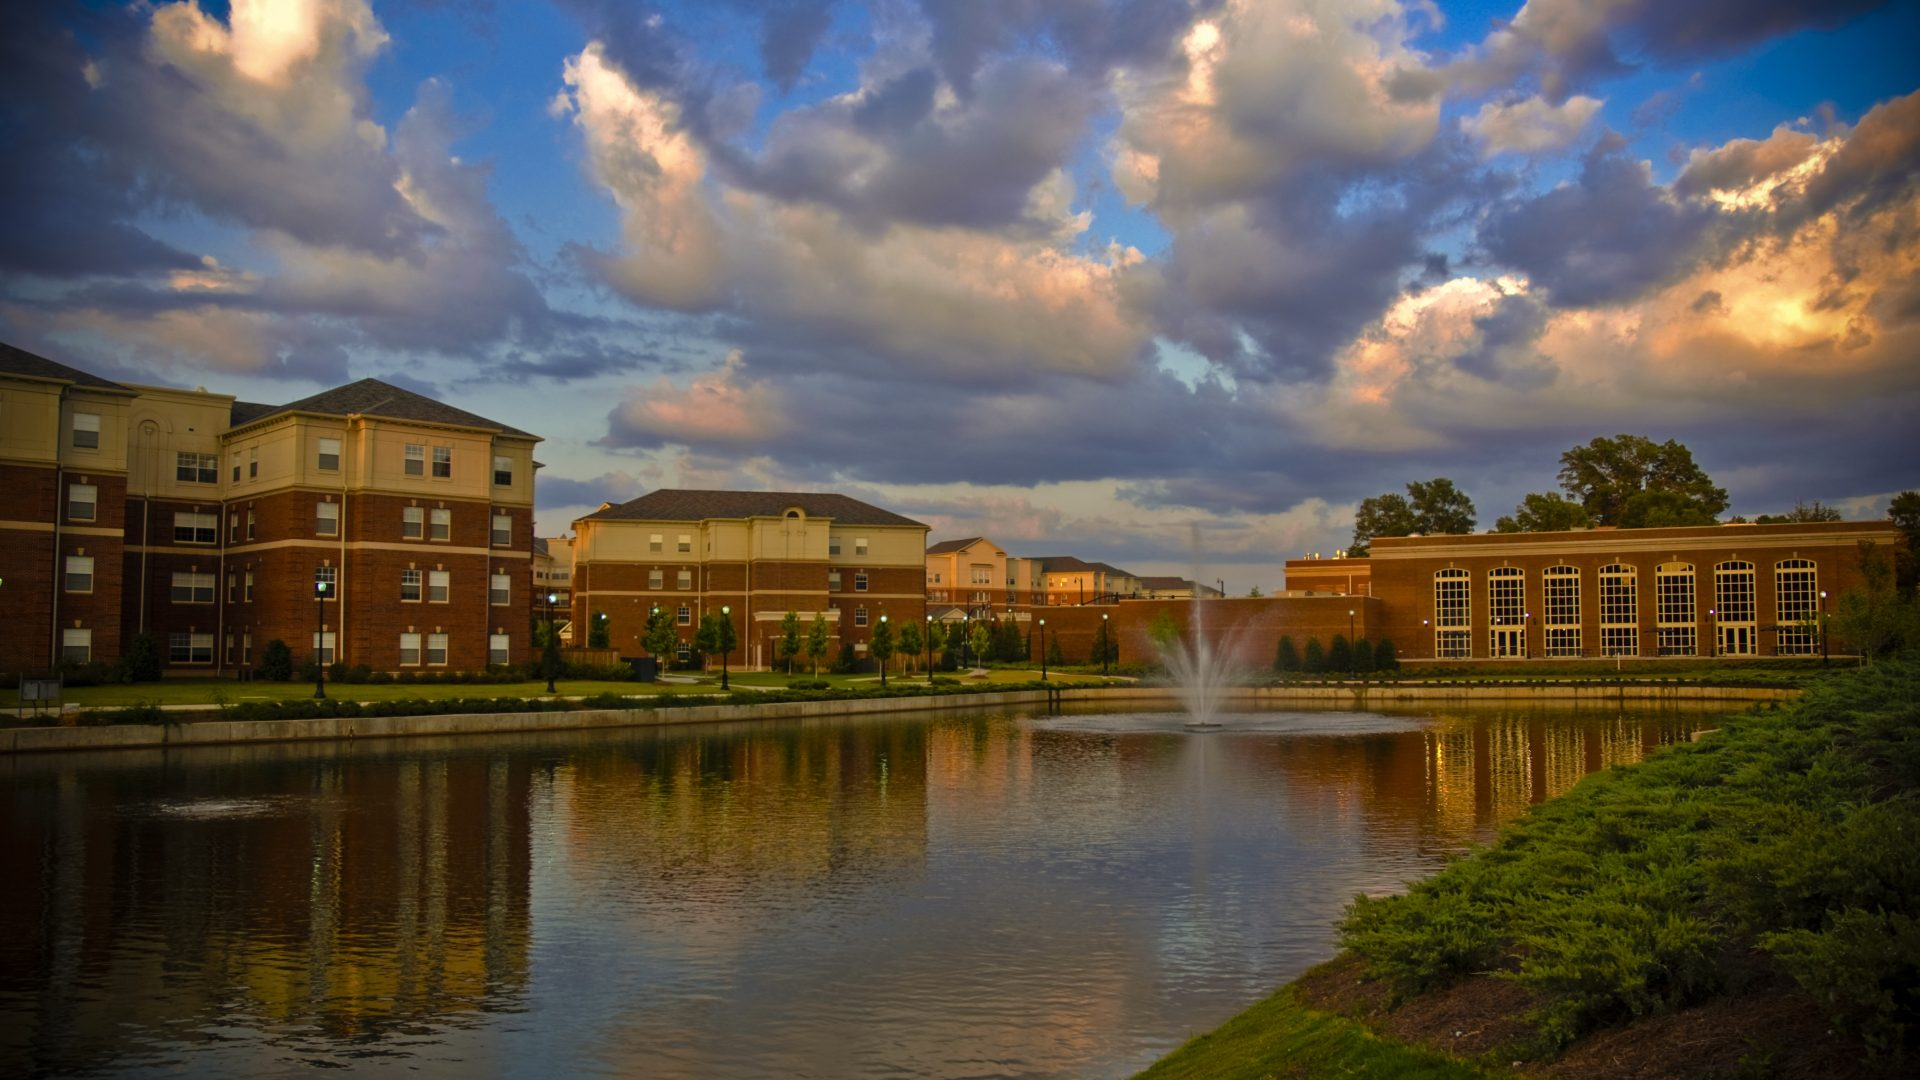 Parking Services – Parking Services | The University of Alabama